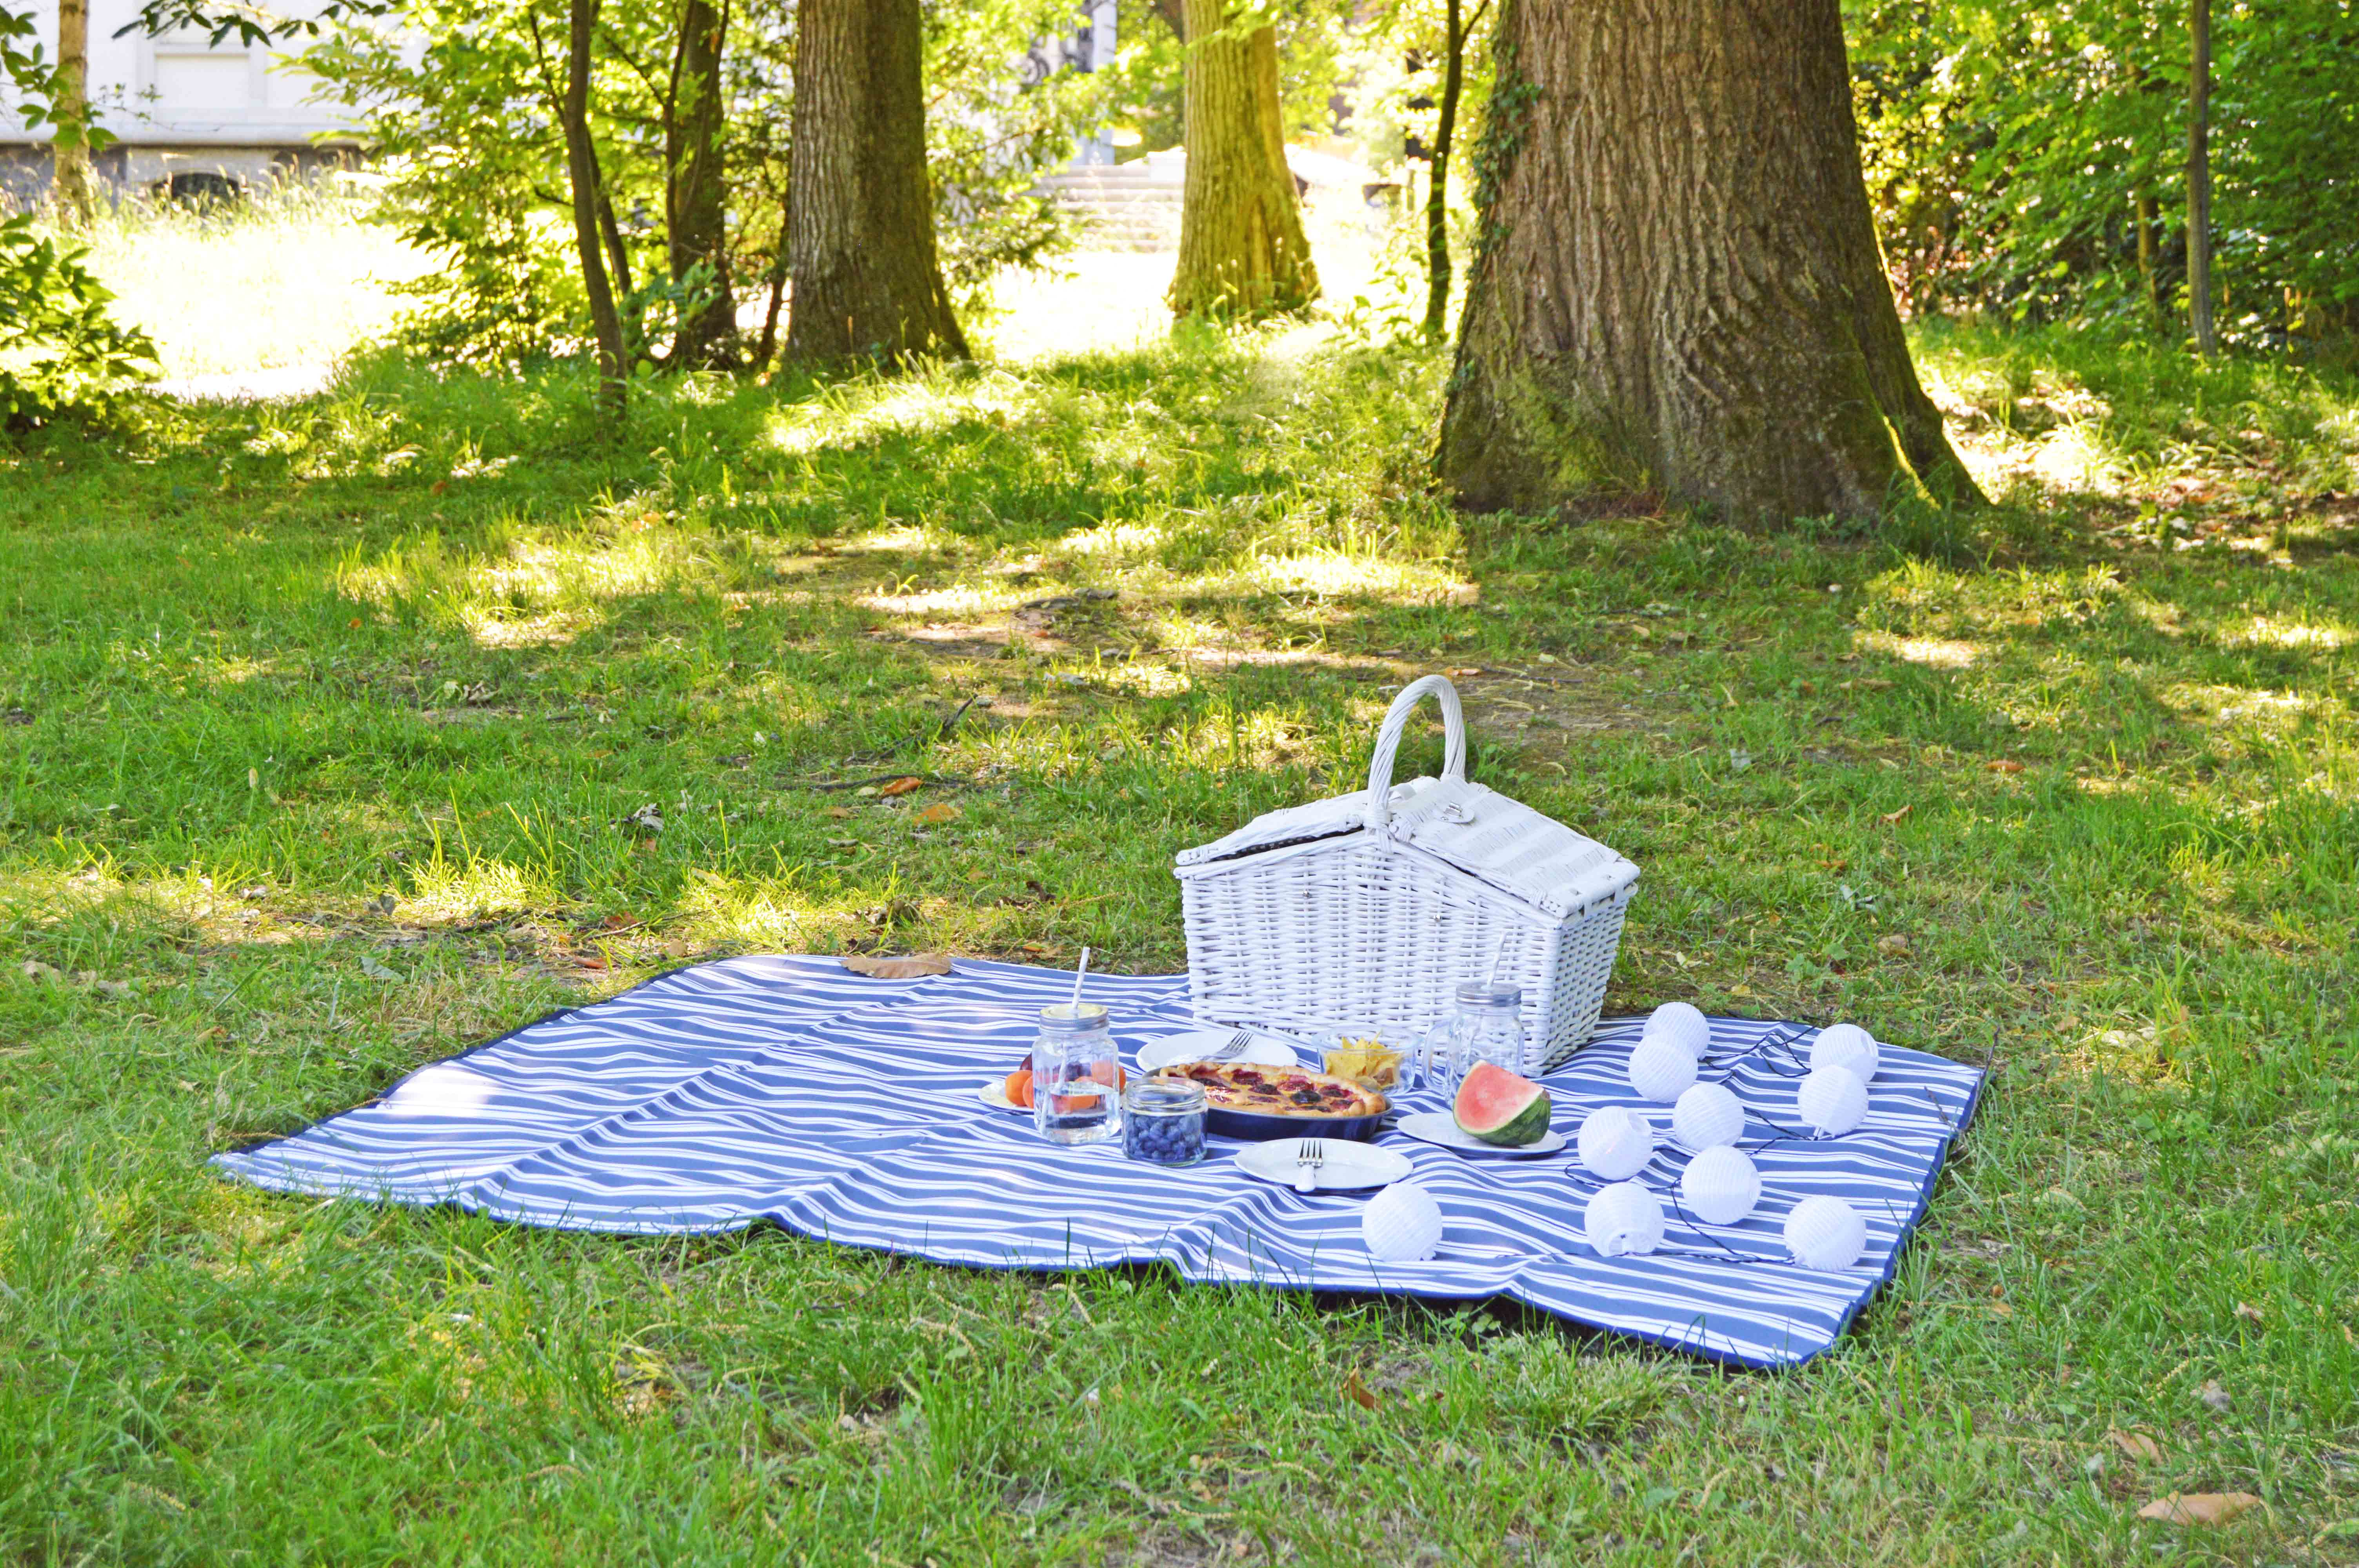 tipps f r das perfekte sommer picknick the chic advocate. Black Bedroom Furniture Sets. Home Design Ideas